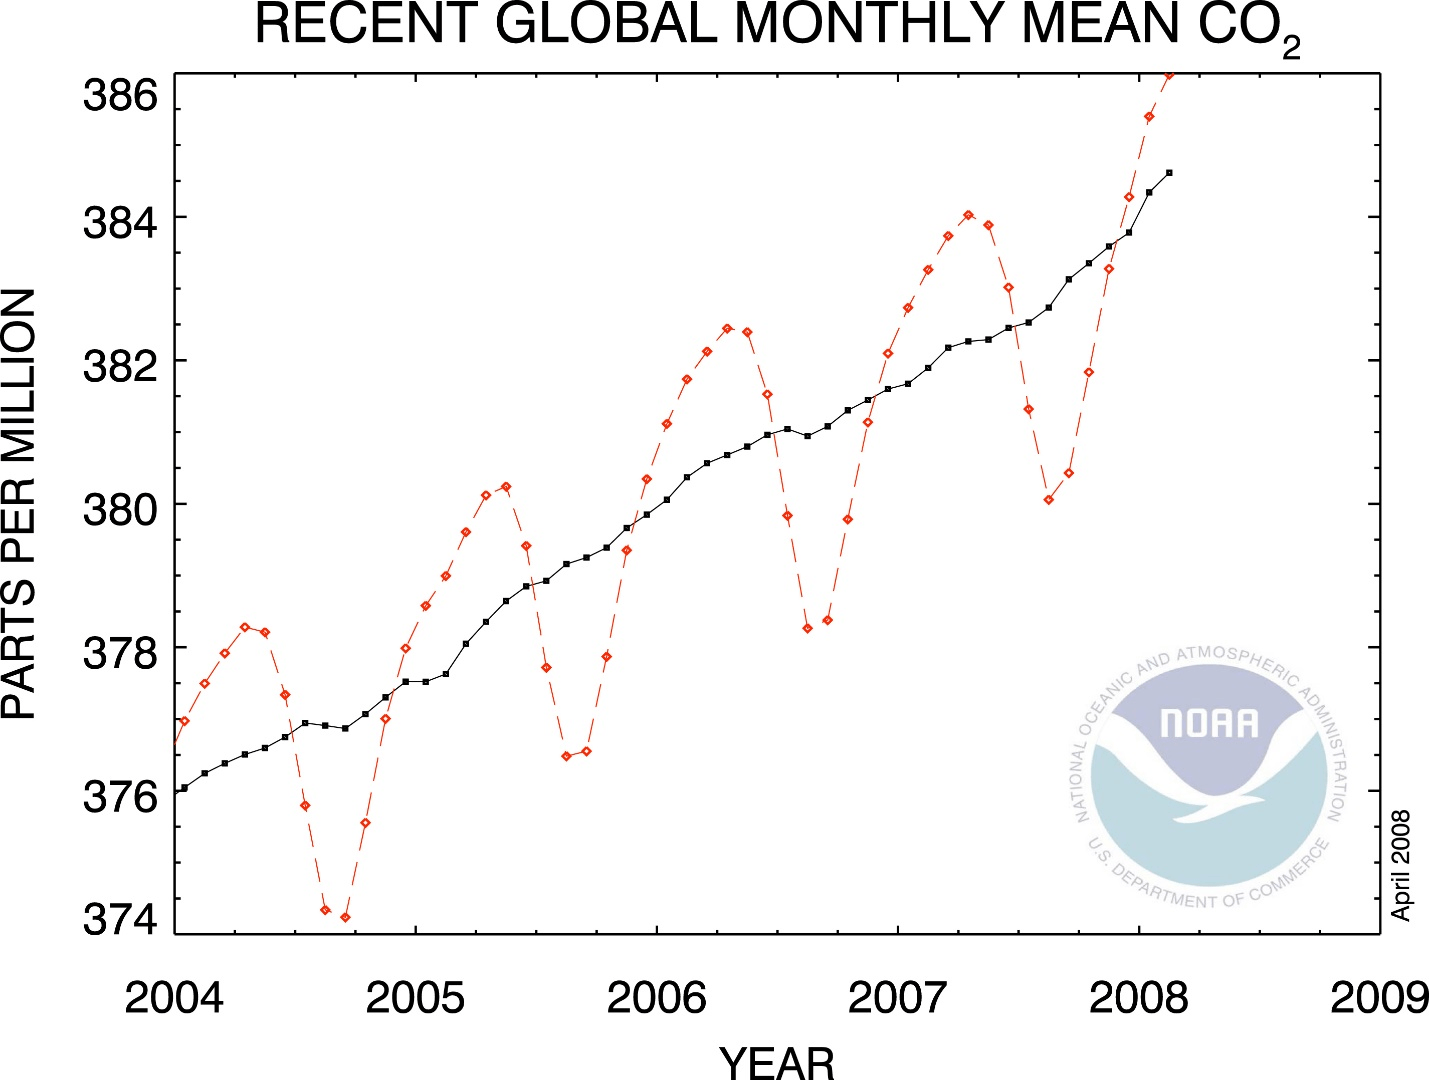 Chart of Recent Global Monthly Mean CO2